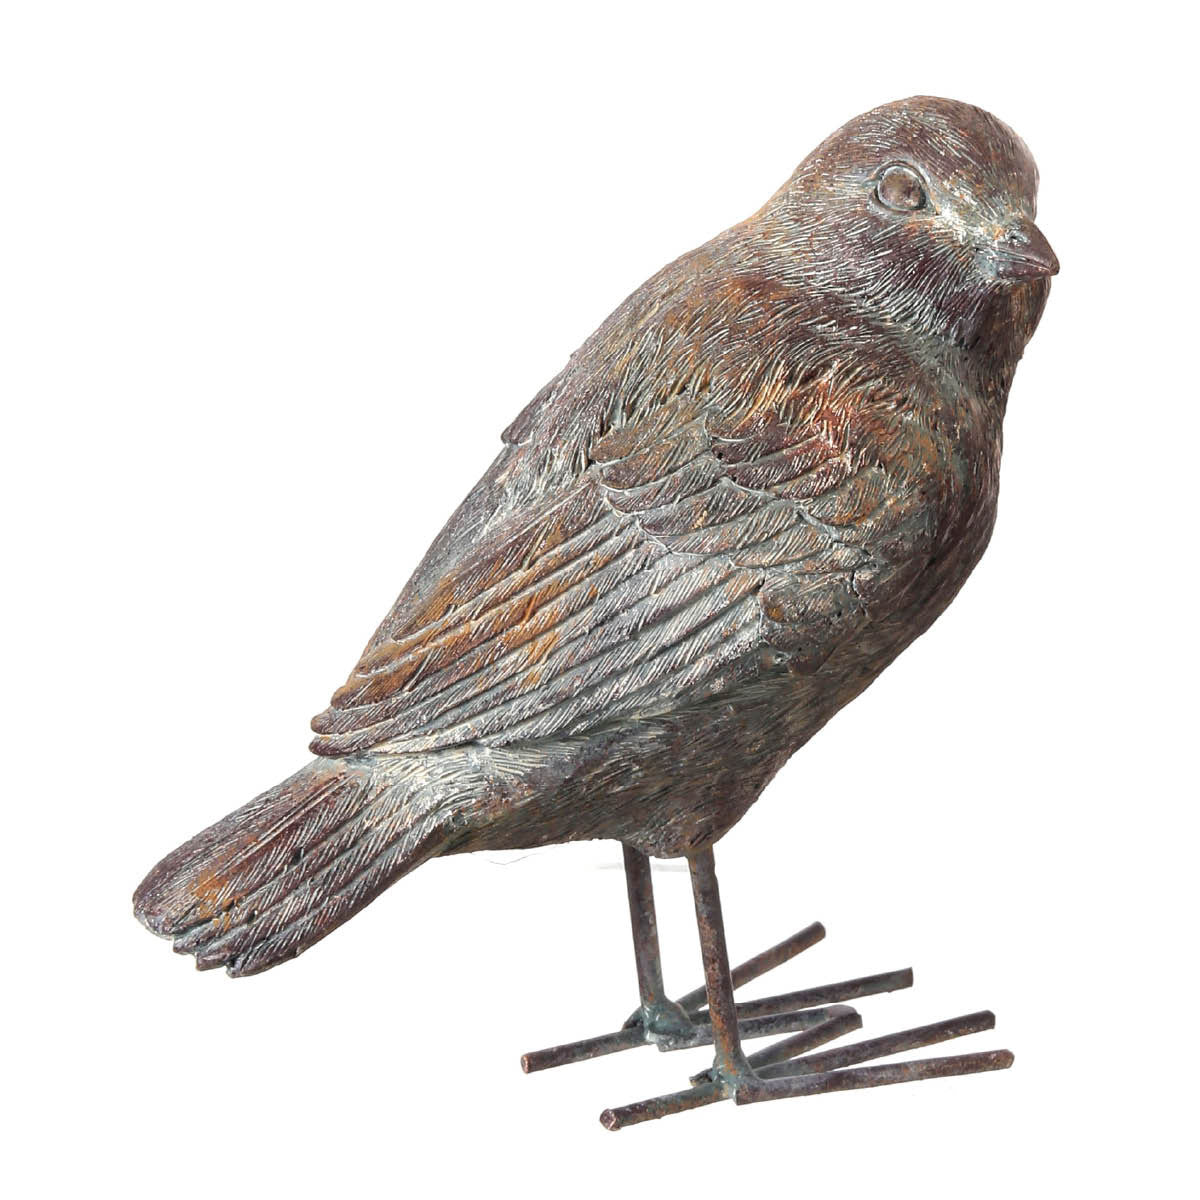 Stylish Resin Birds in 2 Poses